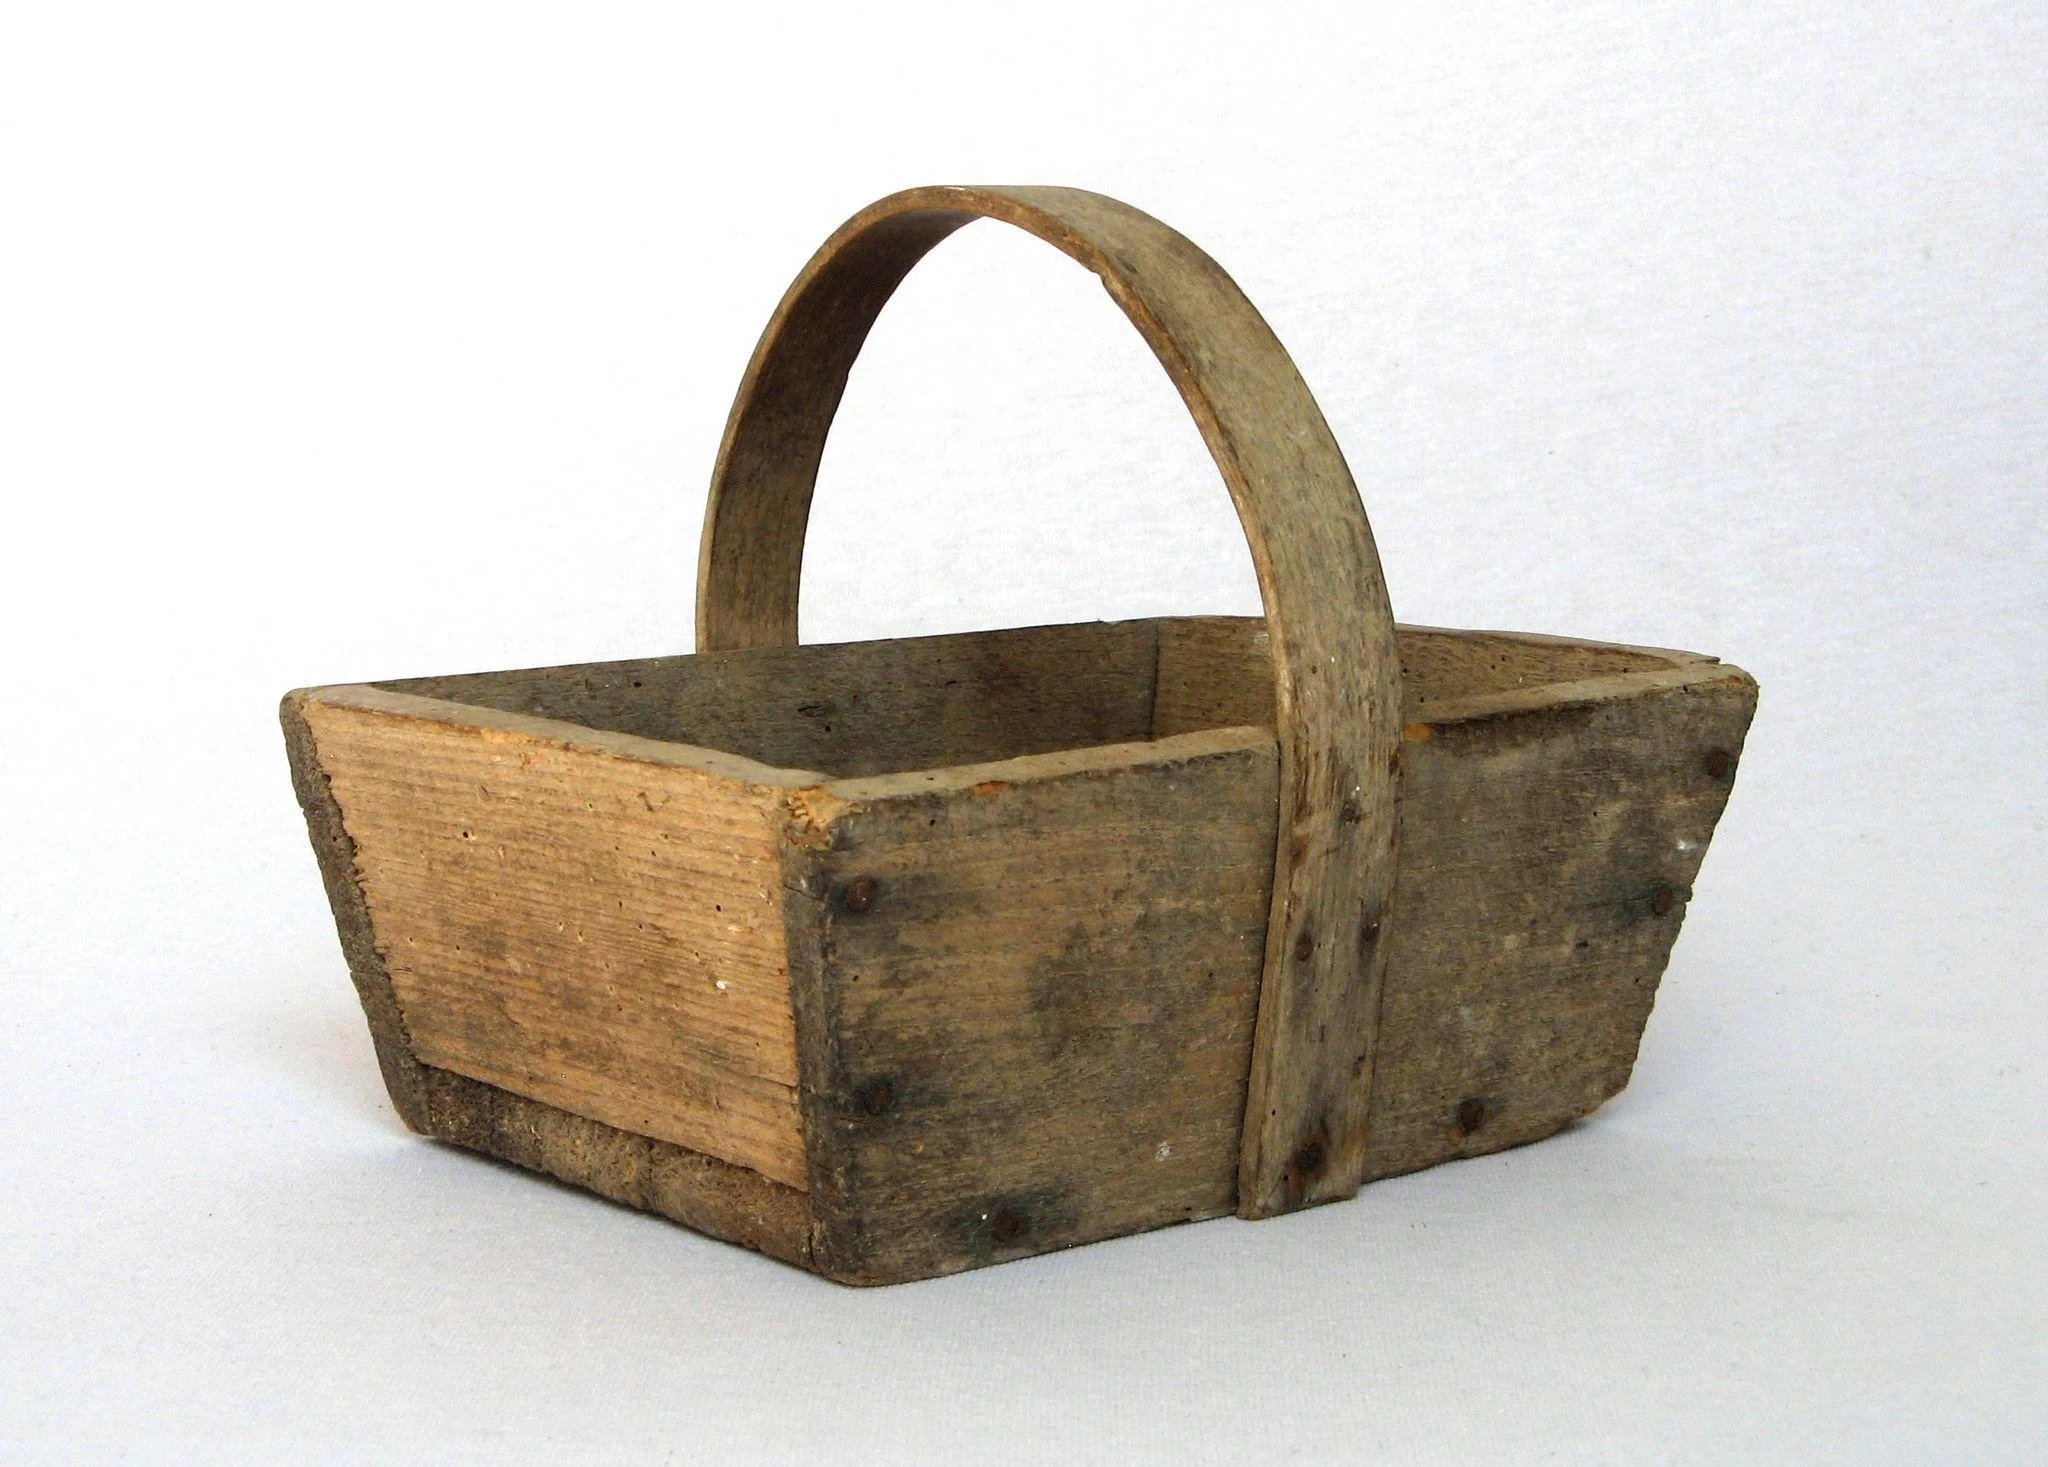 PETITE French Wooden Garden Trug - Harvest Basket -Rare Small Size ...